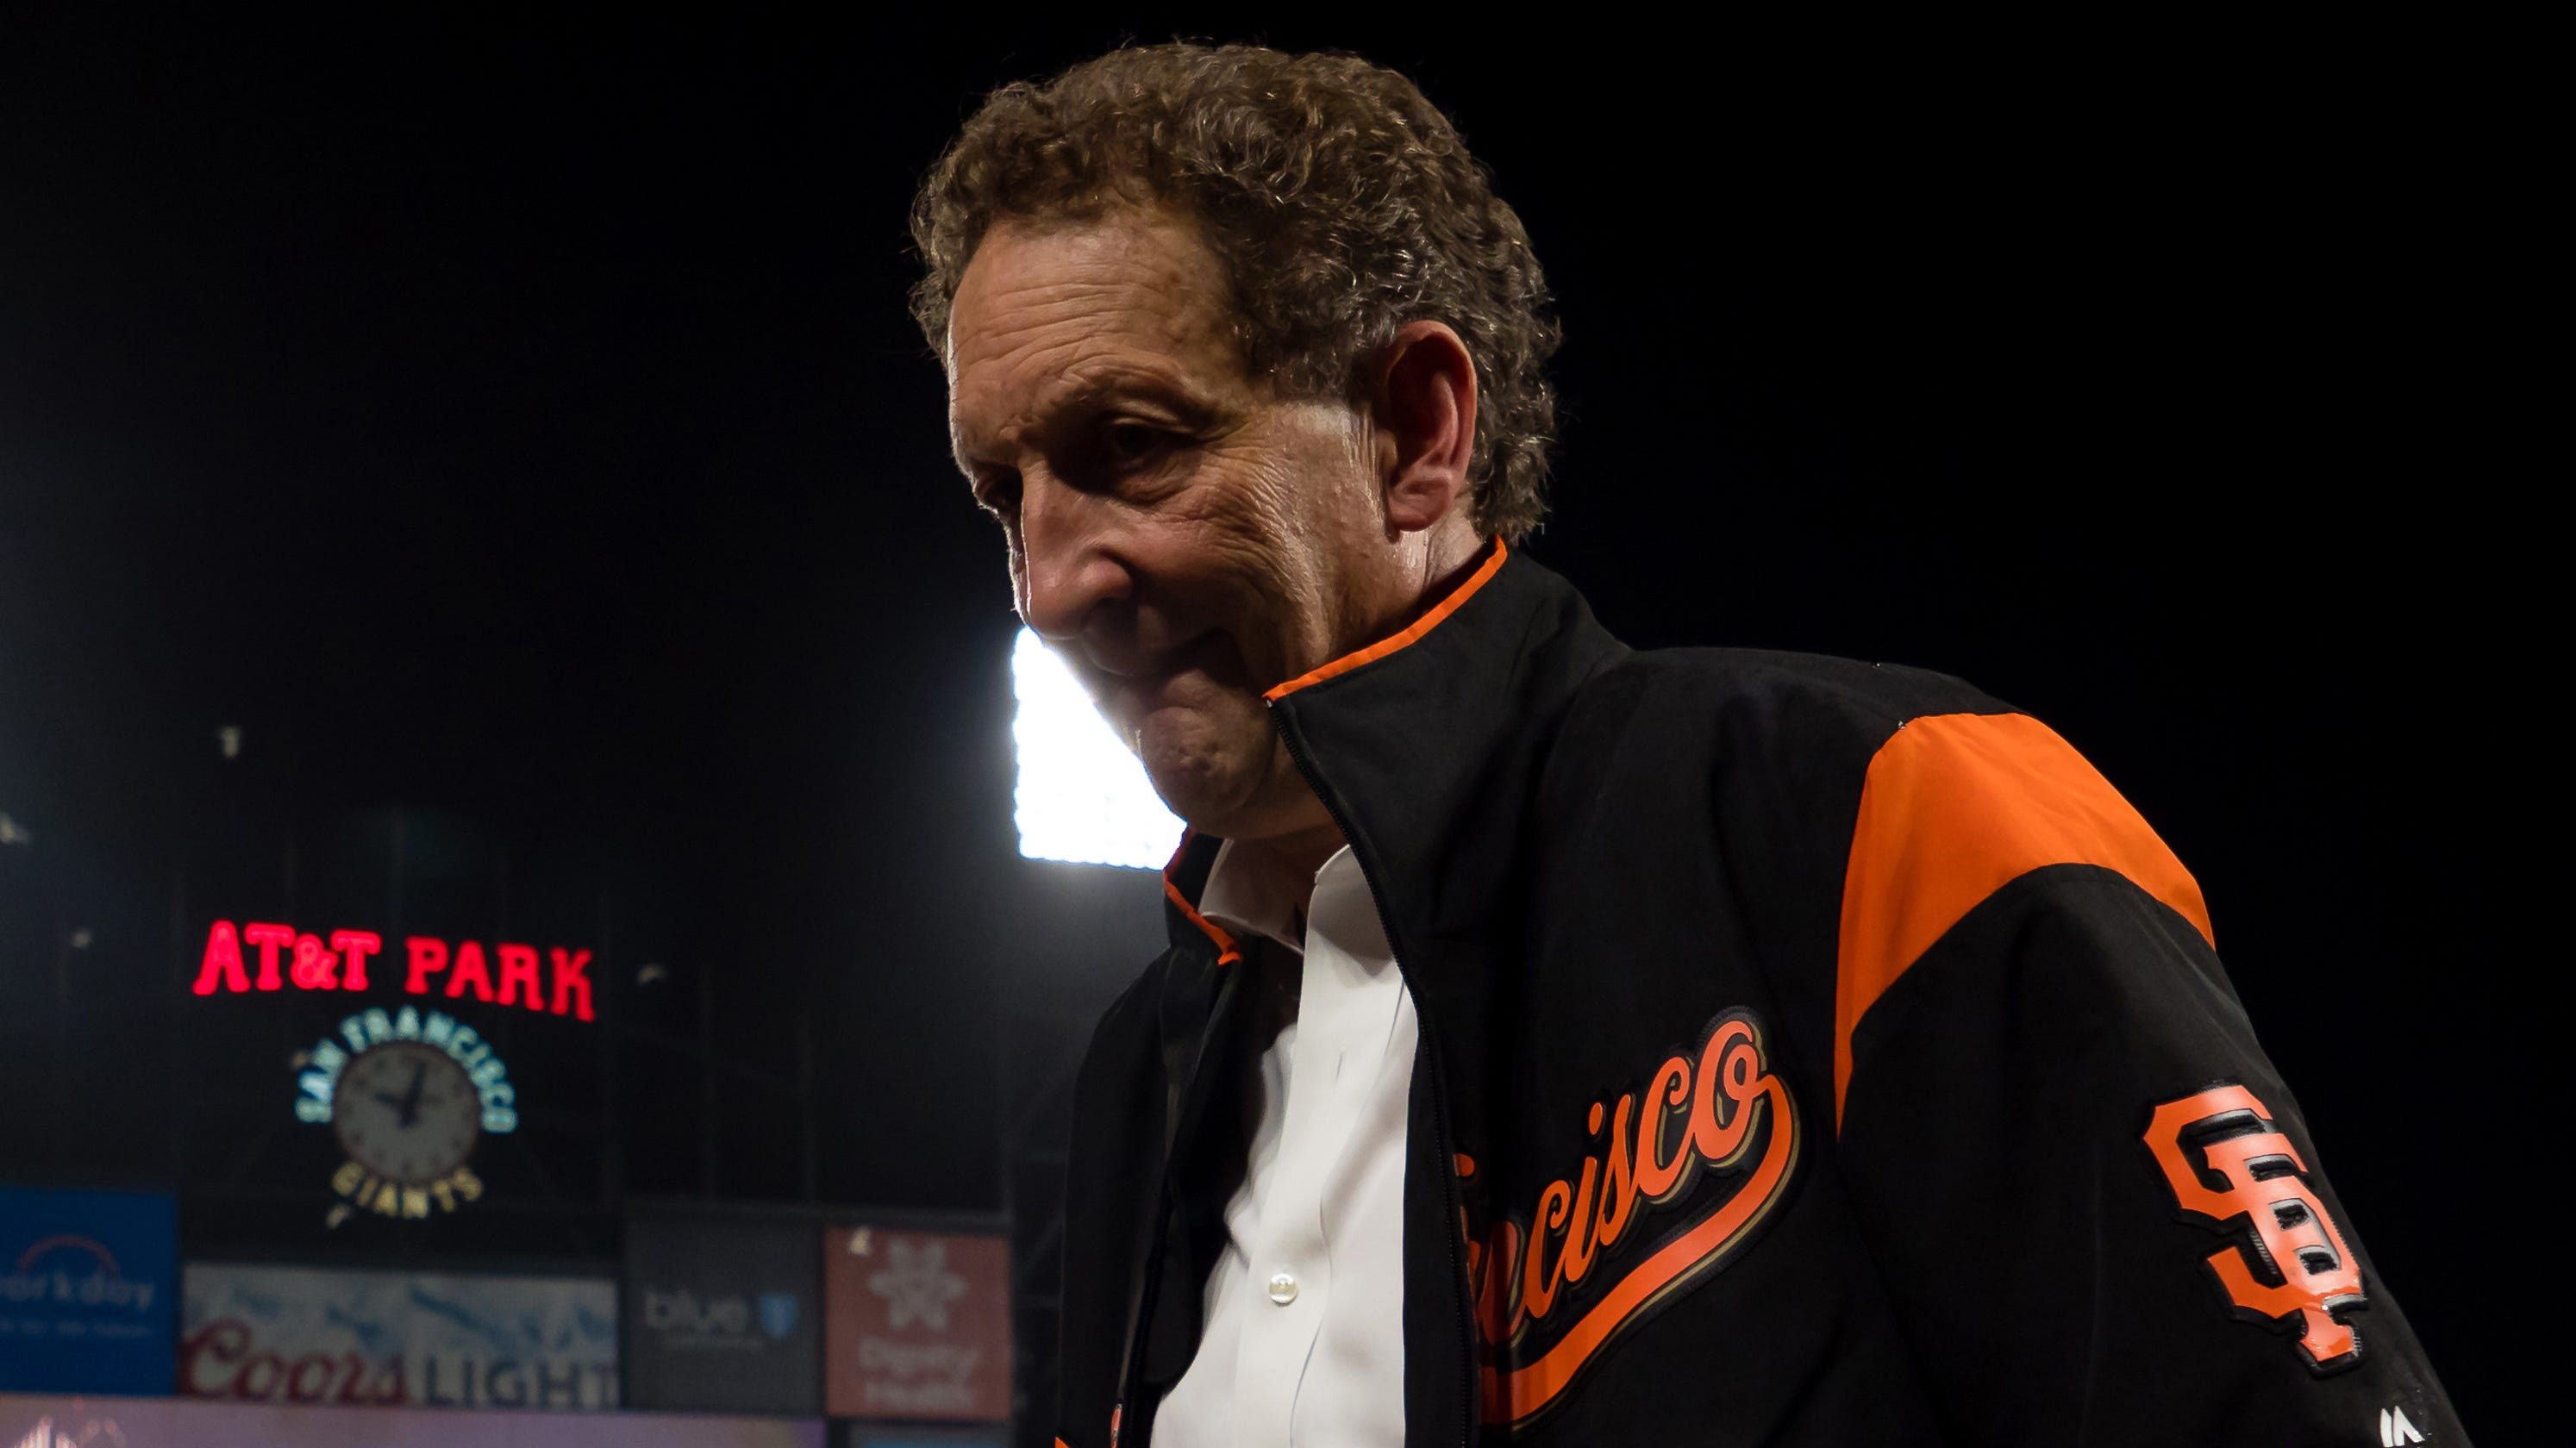 Giants CEO Larry Baer suspended three months by MLB after incident with wife